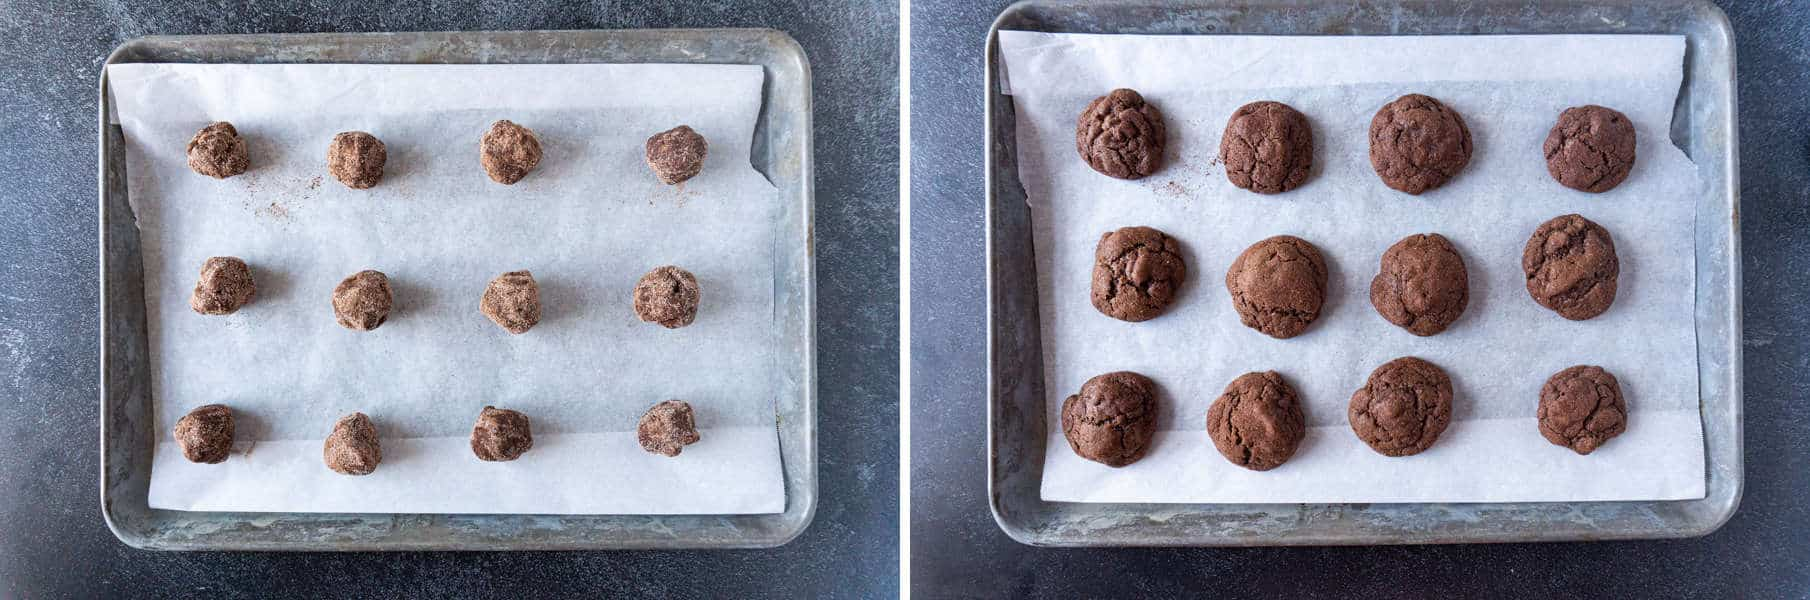 Before and after cookies are baked on cookie sheet